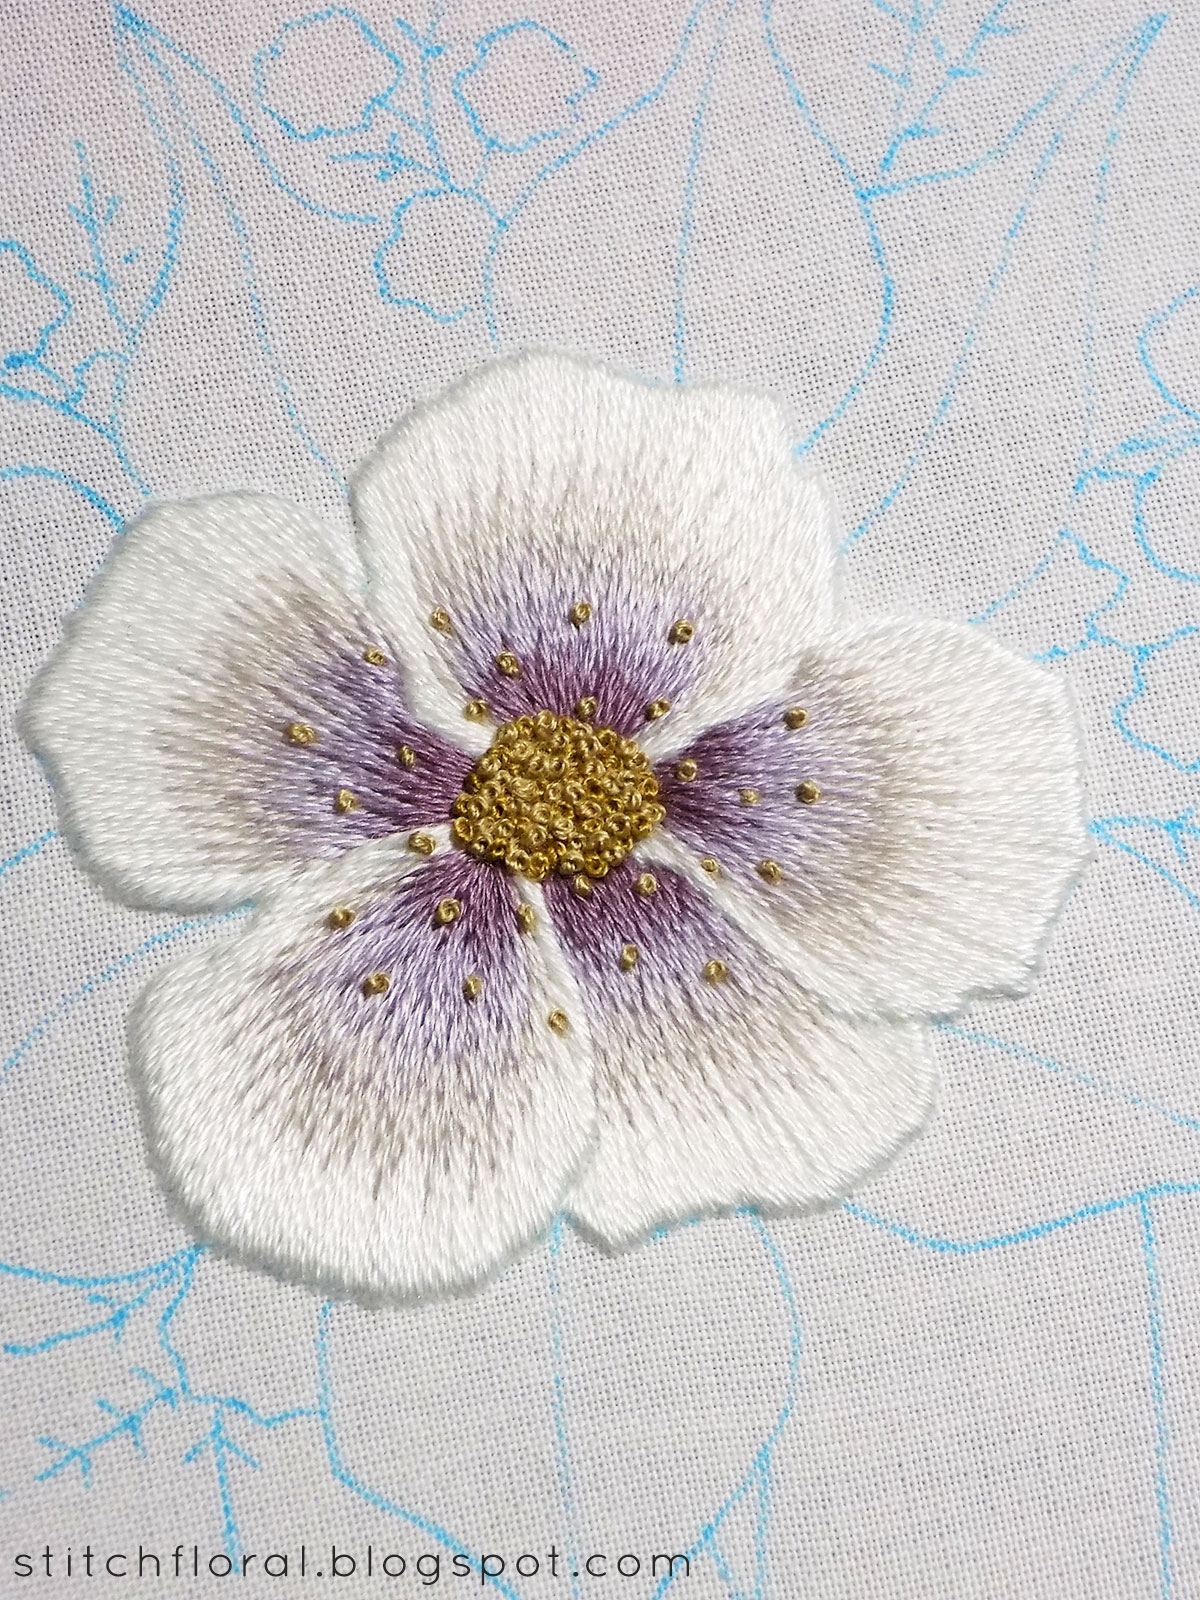 How To End Embroidery : embroidery, Start, Embroidery, Thread:, Updated, Posts, Stitch, Floral